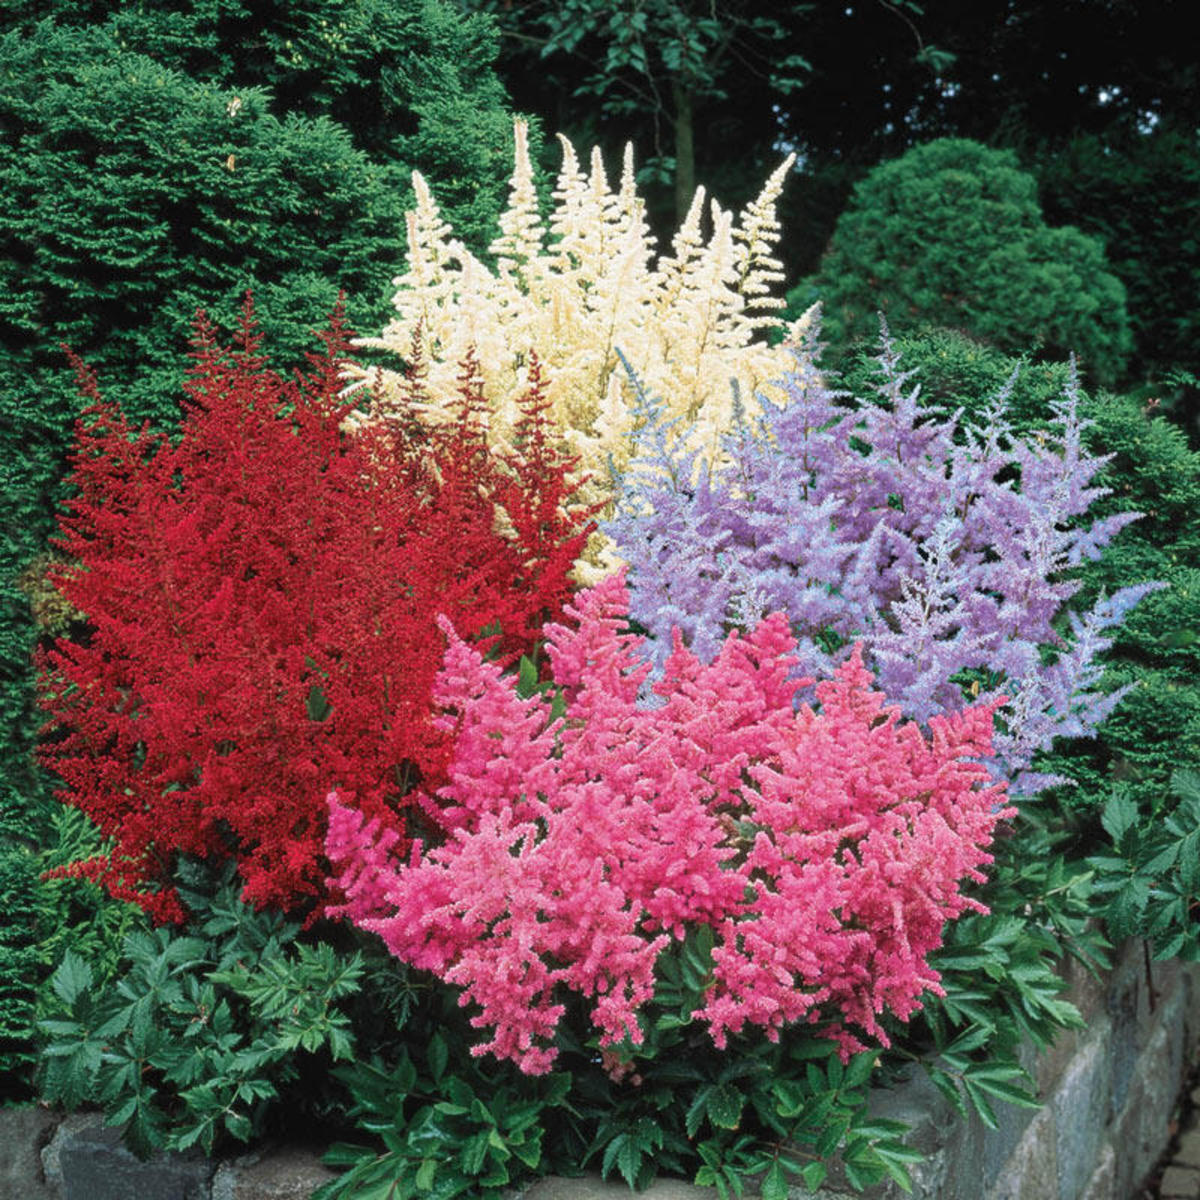 Astilbe is one of our favorite shade perennials because it is the savvy gardener's trick for adding vivid color in low-light areas. White, pink, lavender, and red feathery plumes are carried high over dark green, fernlike foliage.